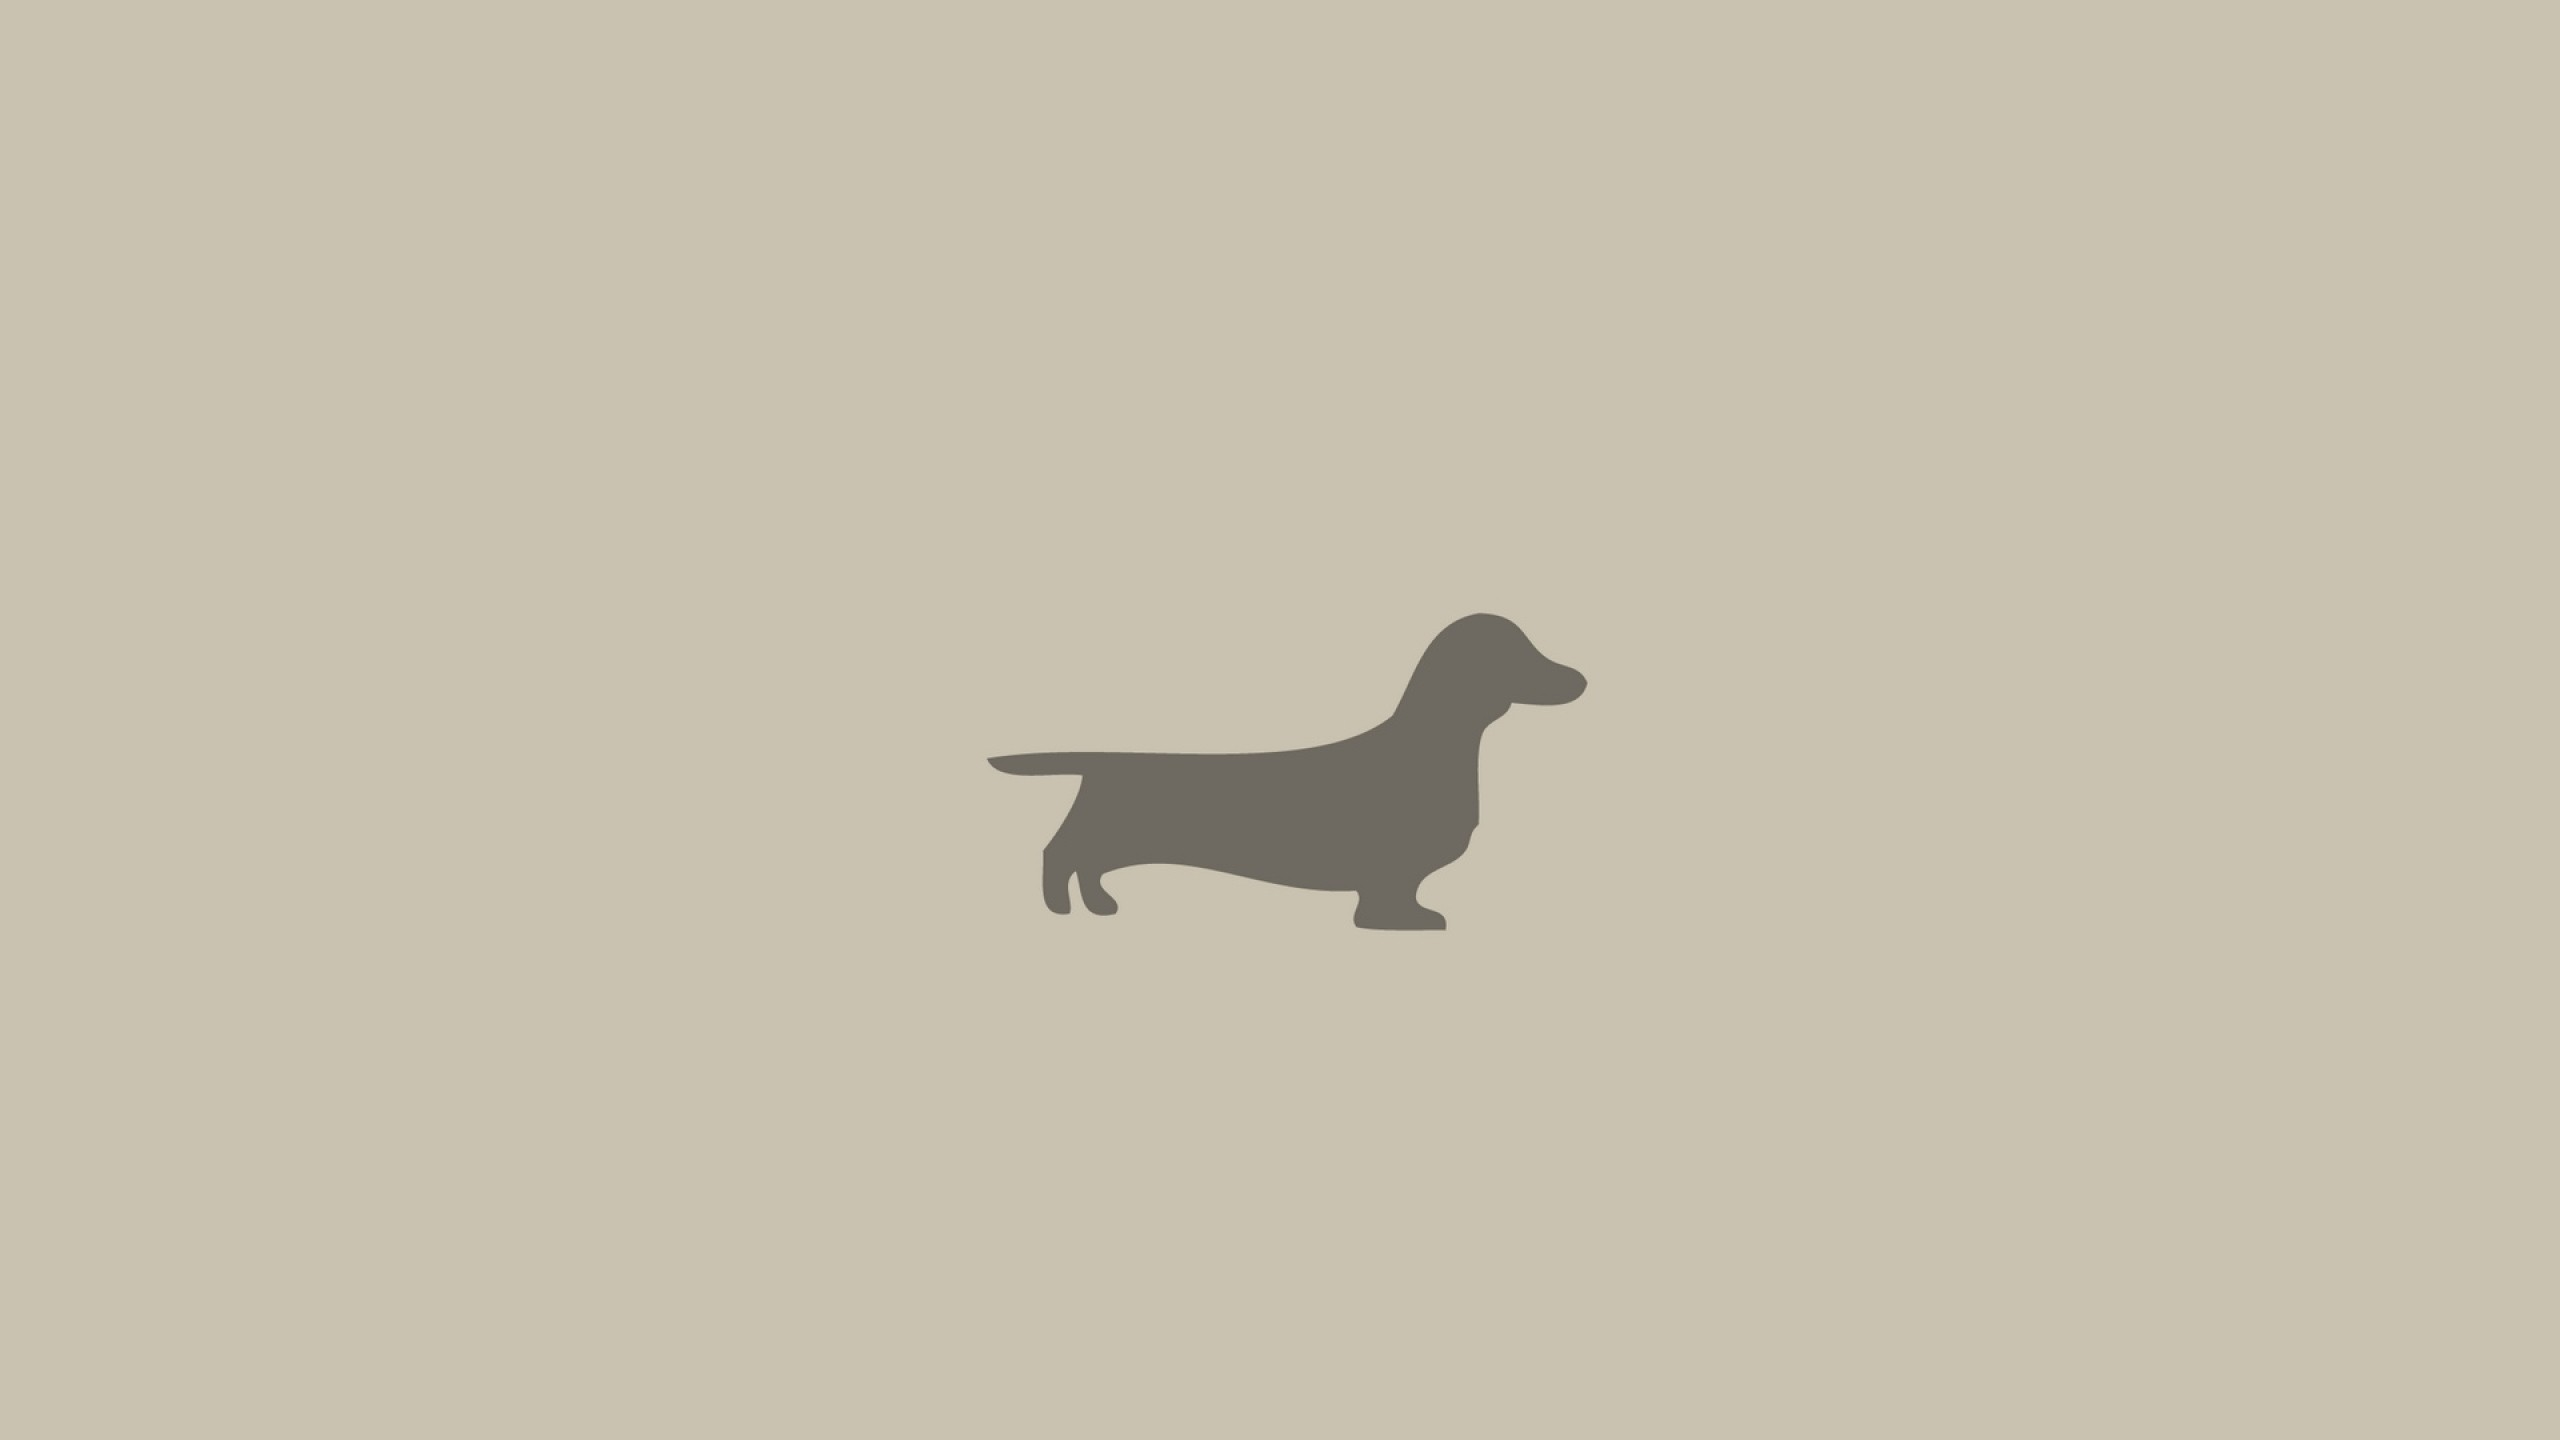 2560x1440  Preview wallpaper dachshund, dog, minimalism, animal